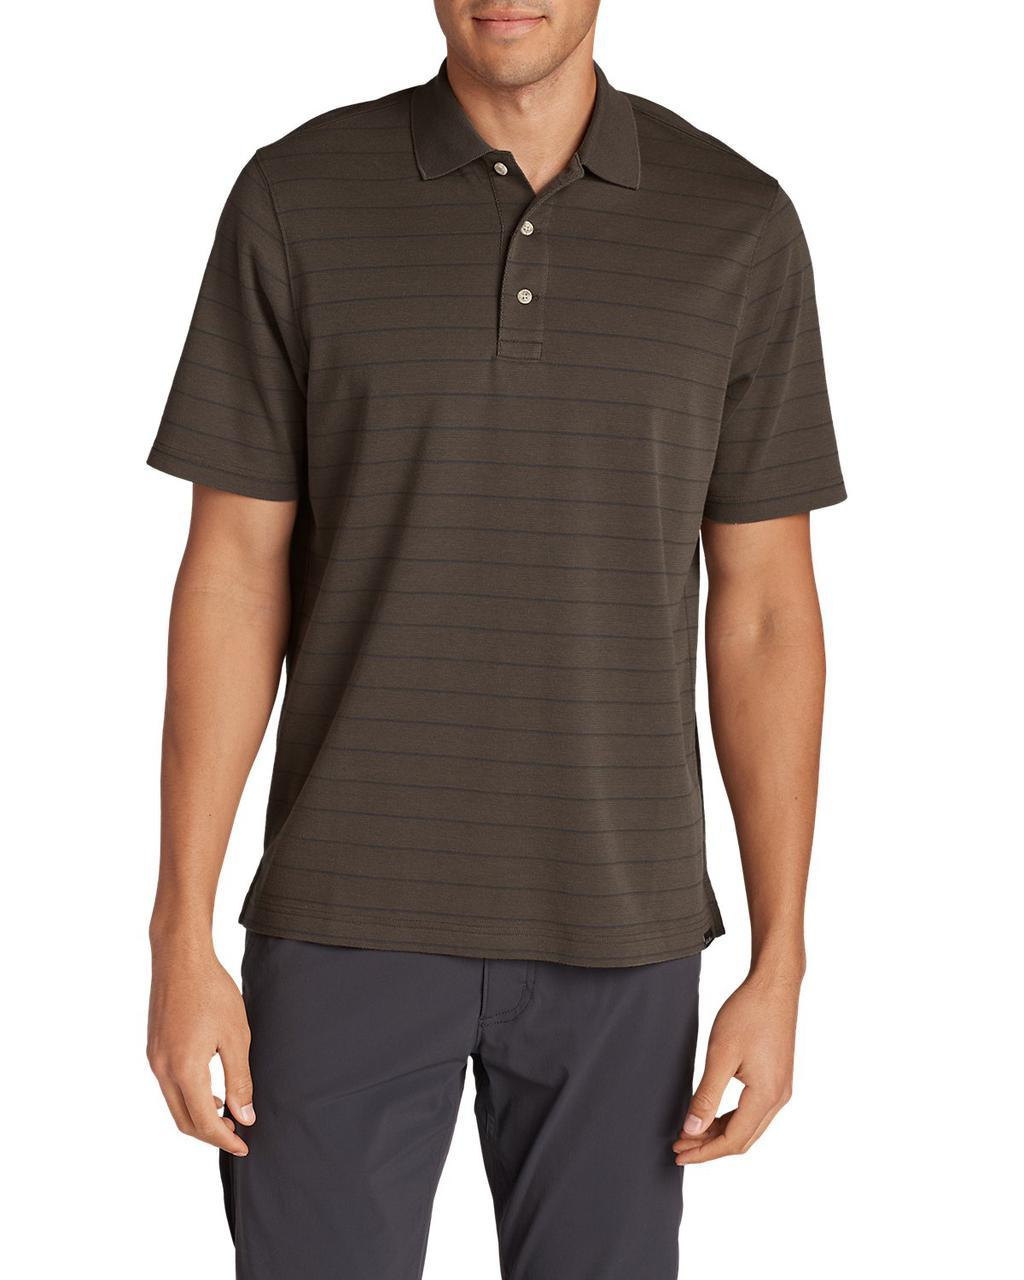 Поло Eddie Bauer Voyager II Performance Short-Sleeve Polo Shirt L